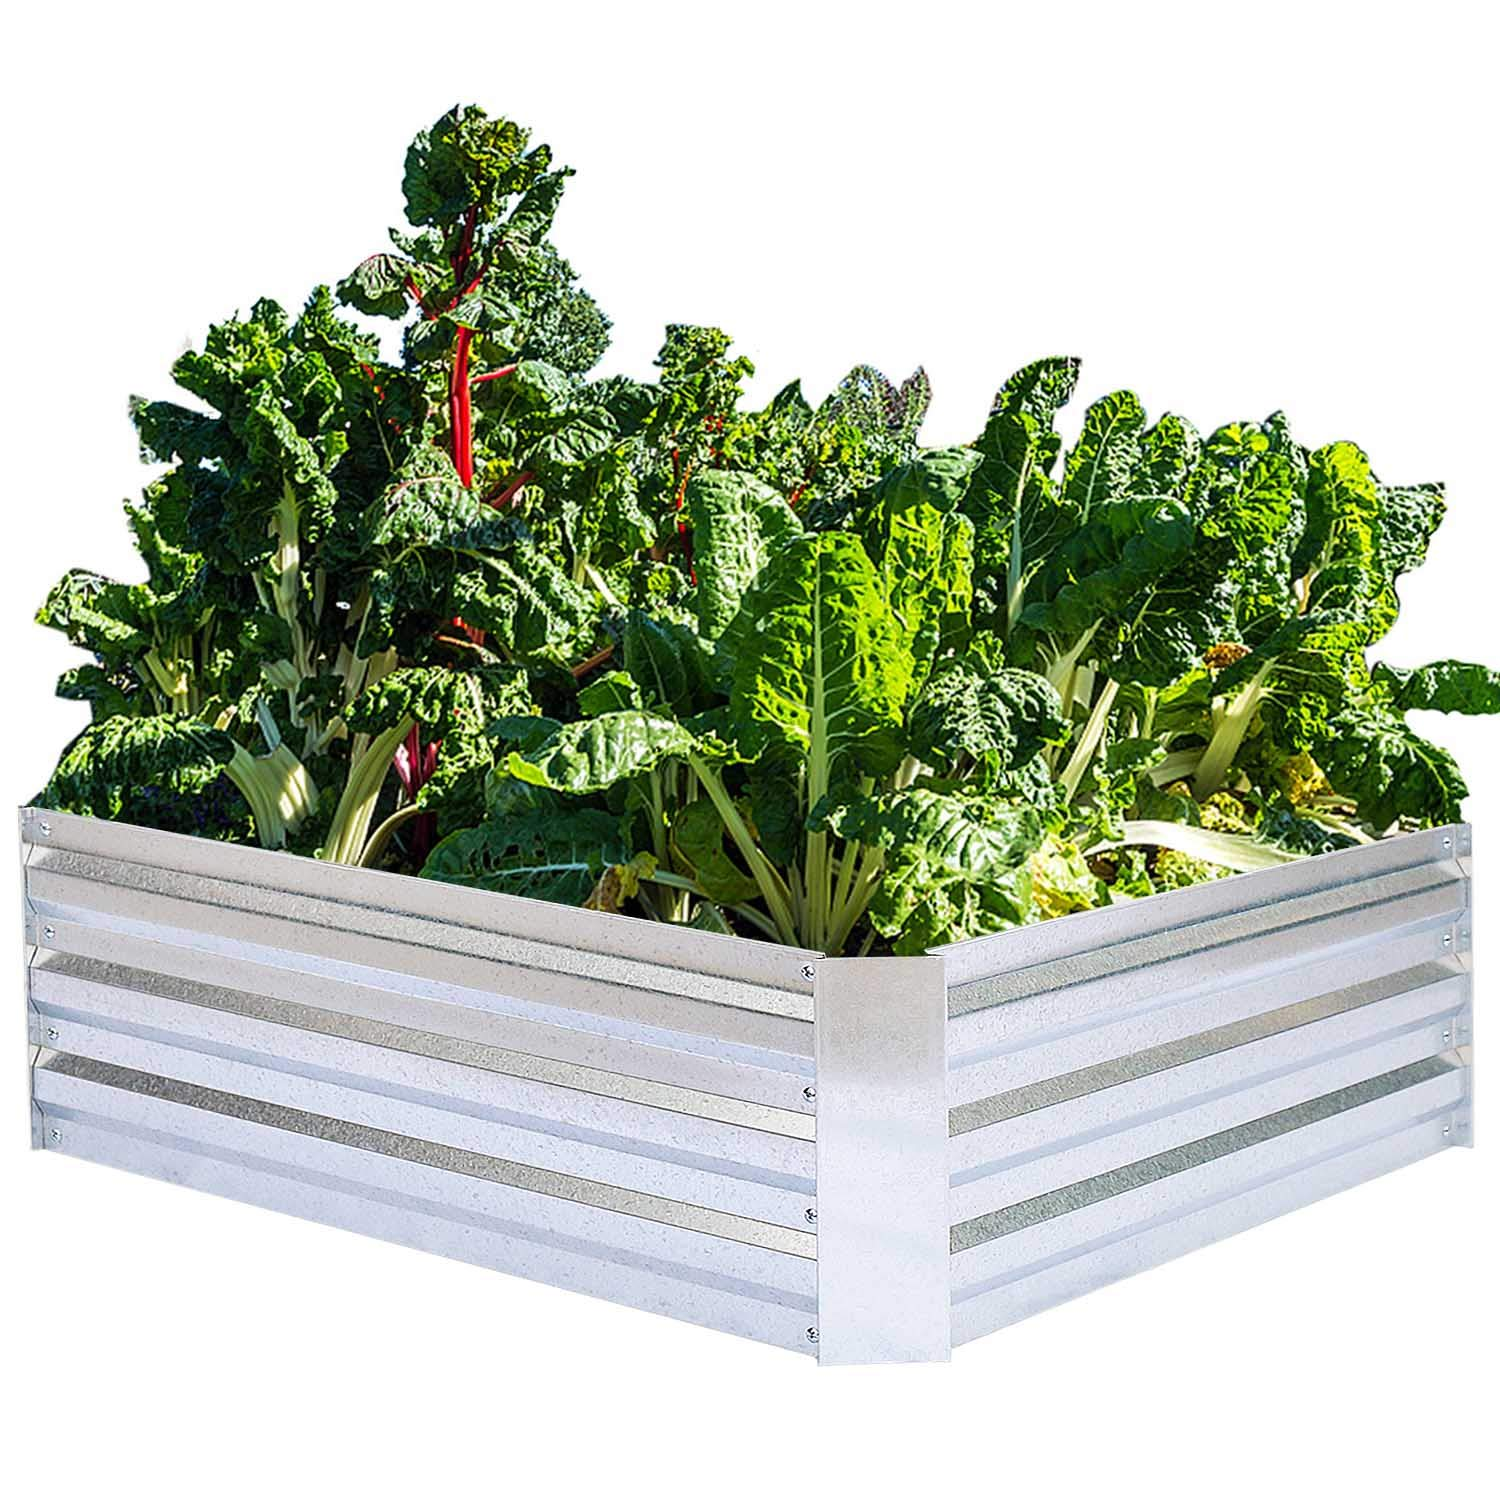 Galvanized Raised Garden Beds For Vegetables Metal Planter Boxes Outdoor Flower Bed Kit Steel Patio 4x3x1ft